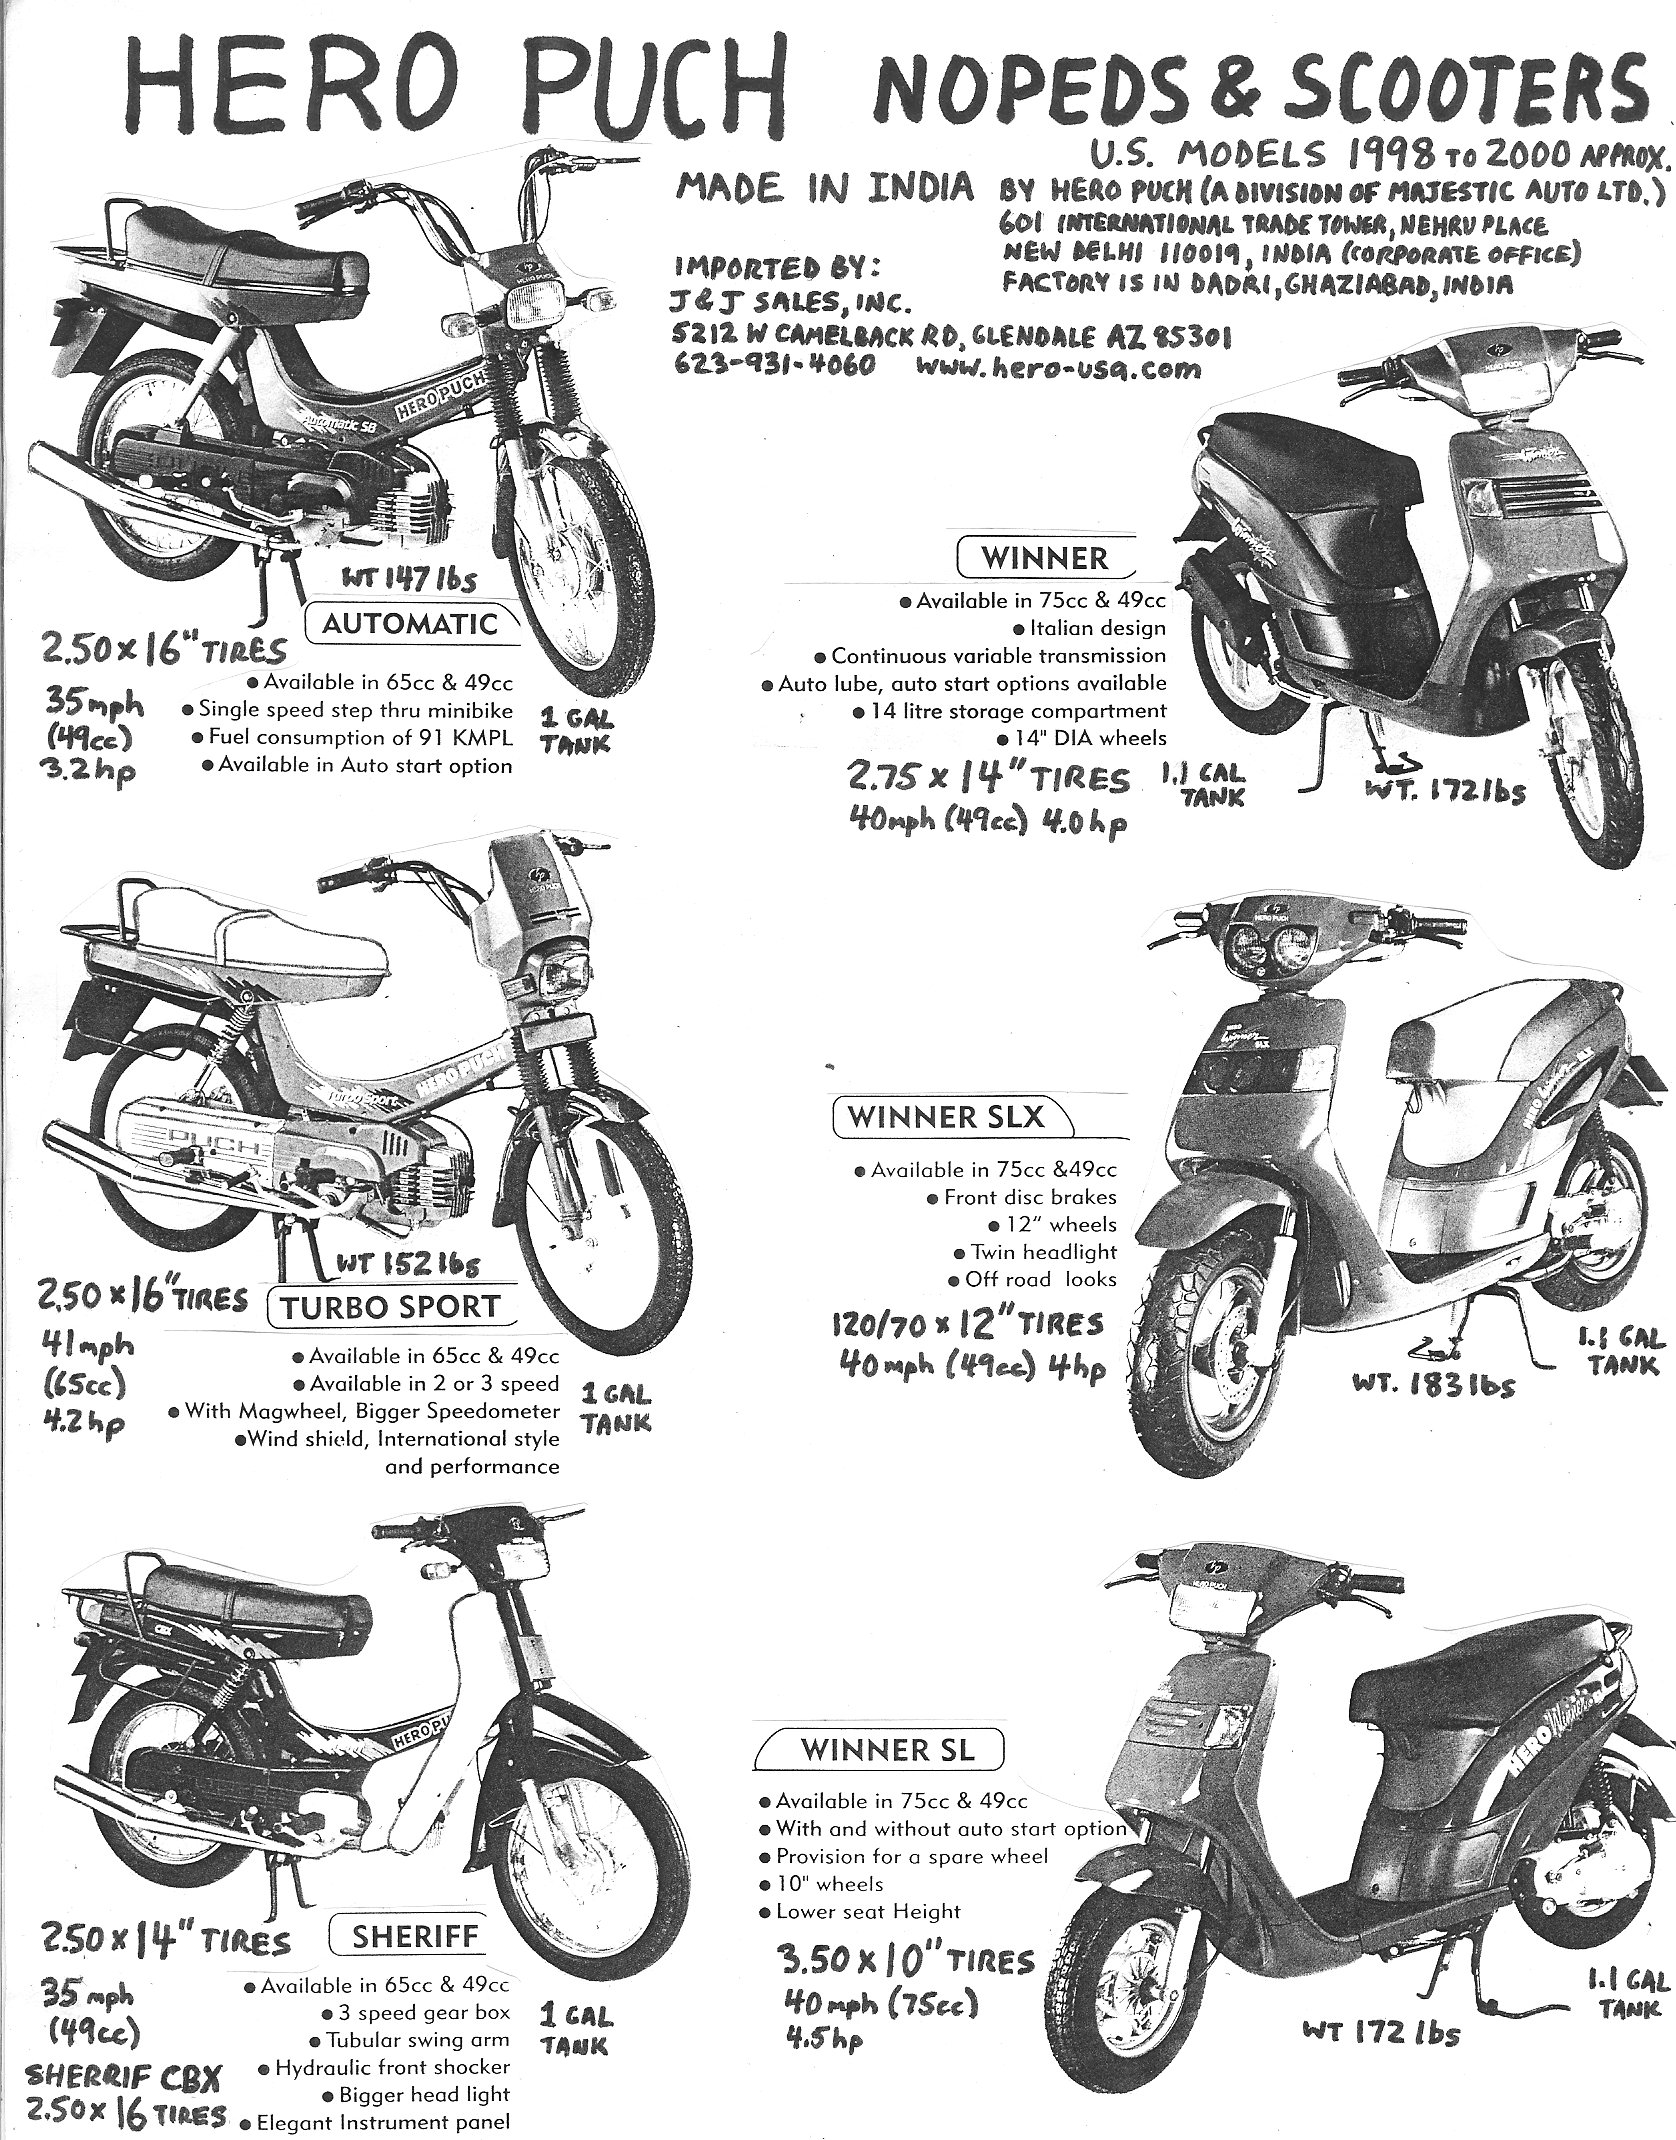 Manual Hero Puch 65cc